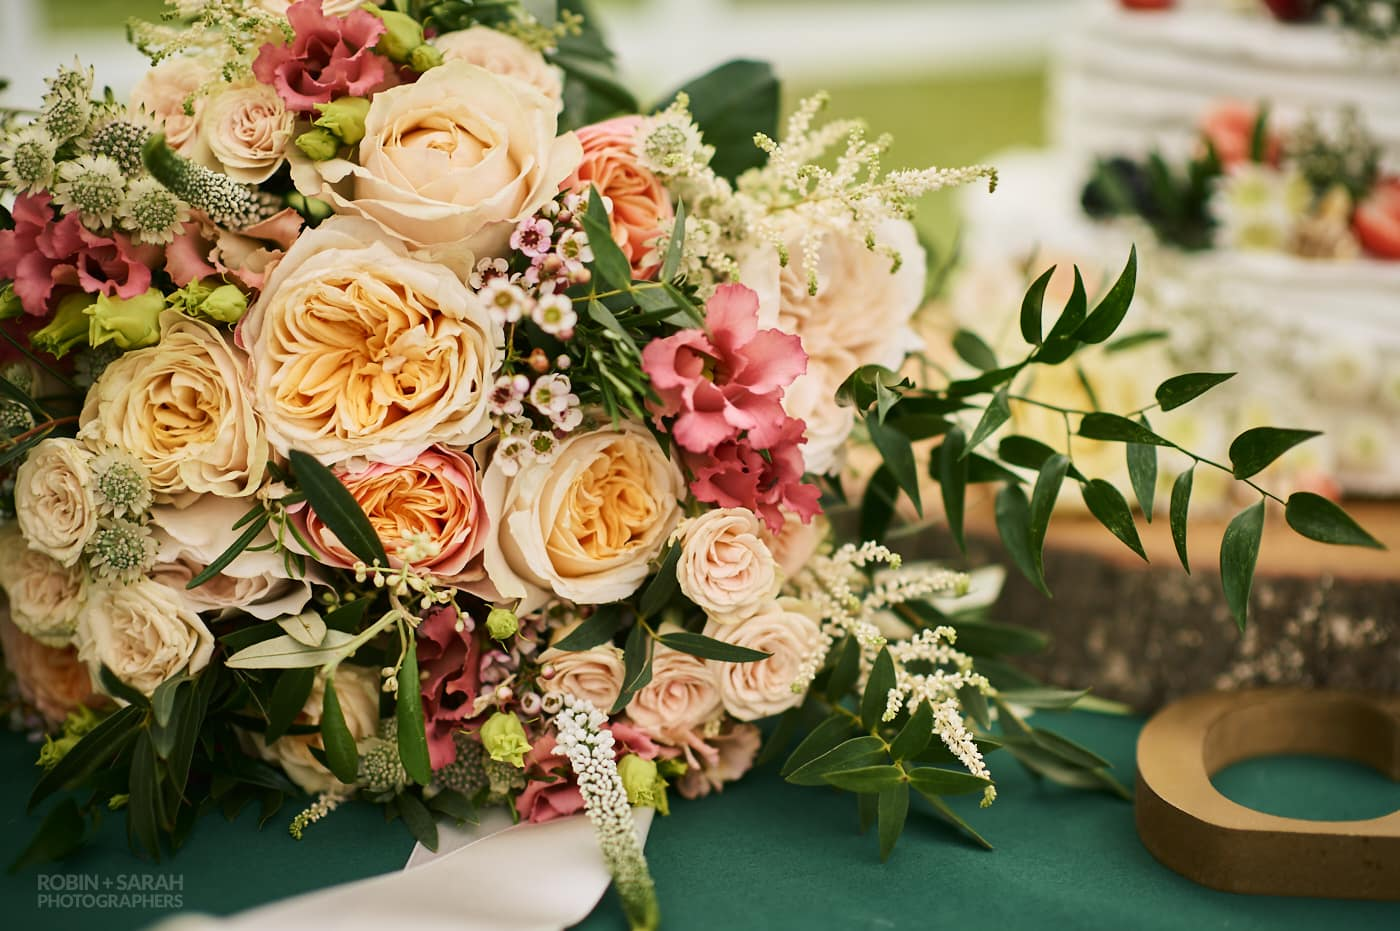 Bridal bouquet with peach and pink flowers resting on table